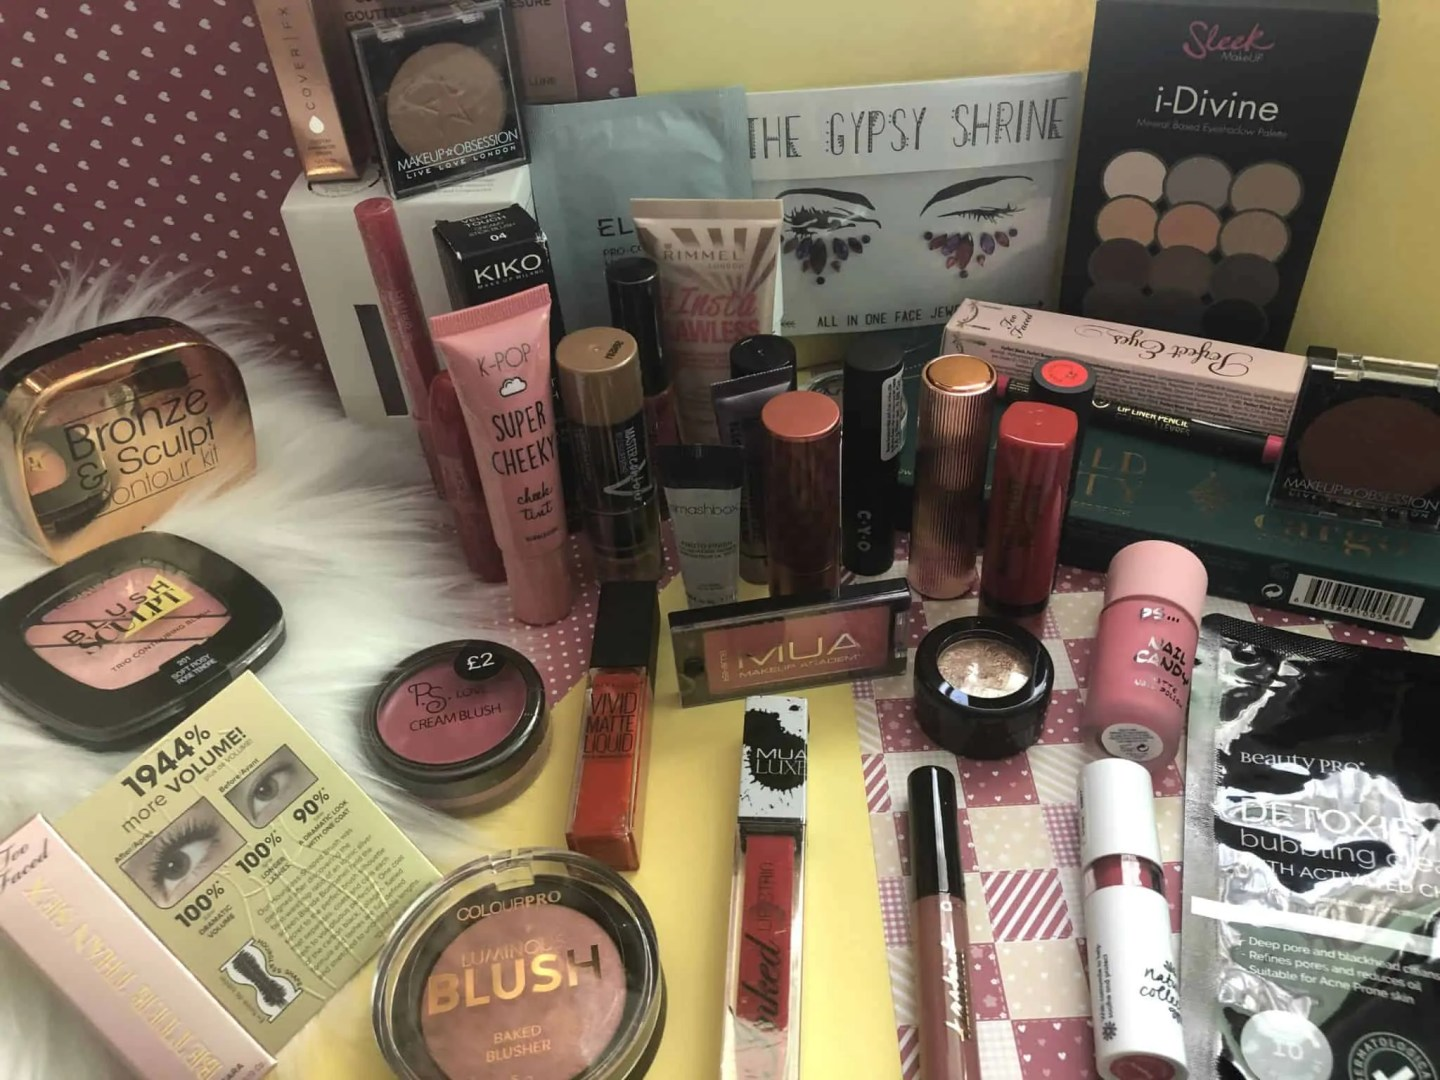 Brighten up January and enter to win a massive beauty bundle